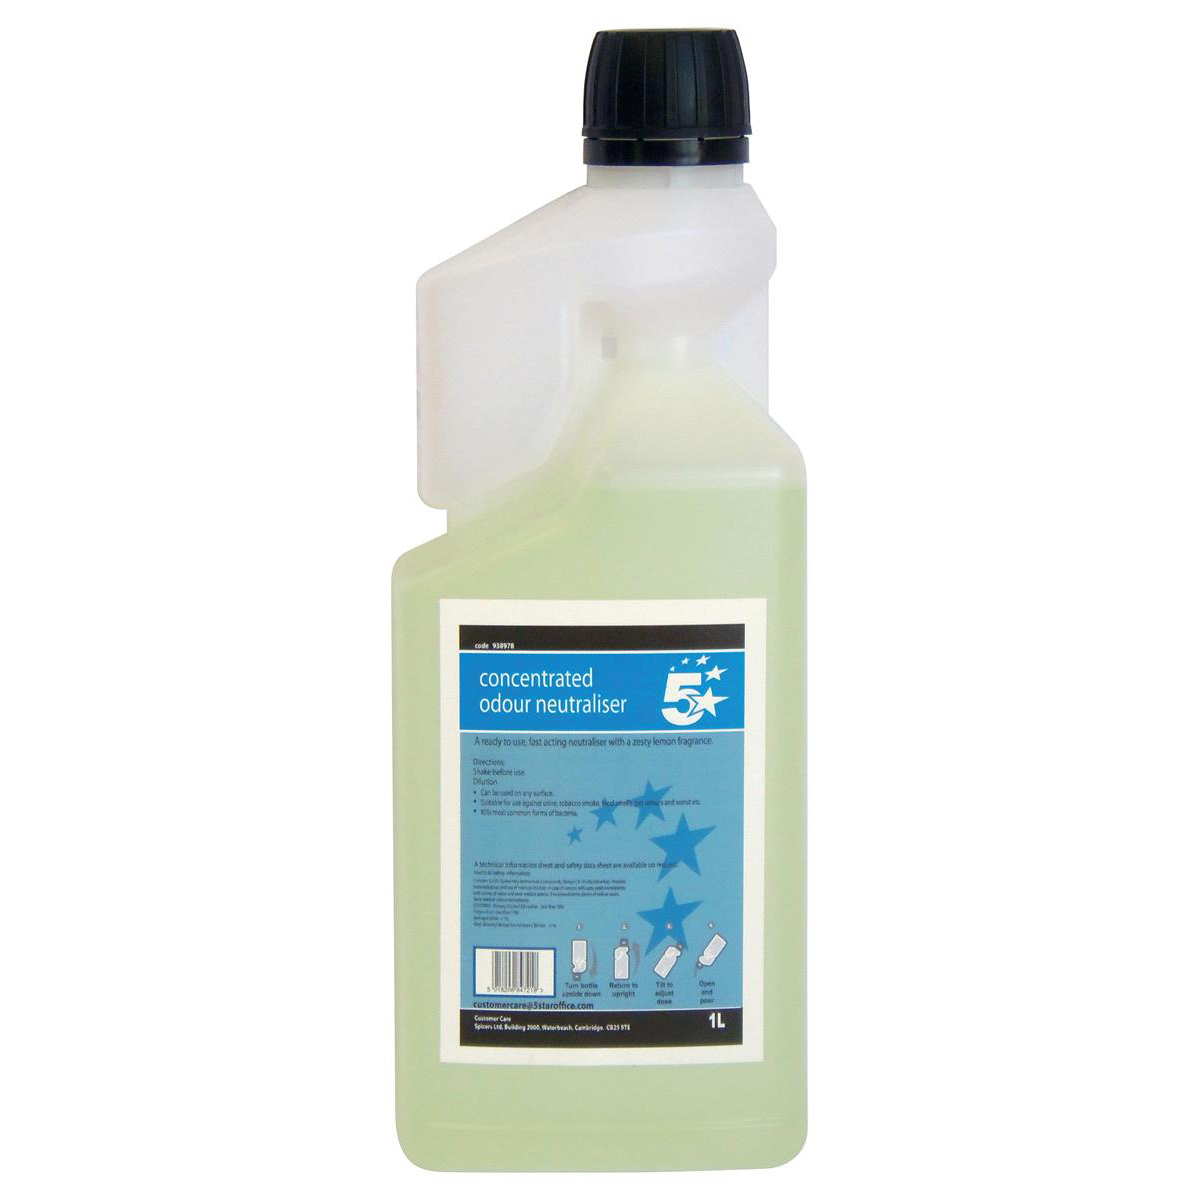 Image for 5 Star Facilities Concentrated Odour Neutraliser 1 Litre